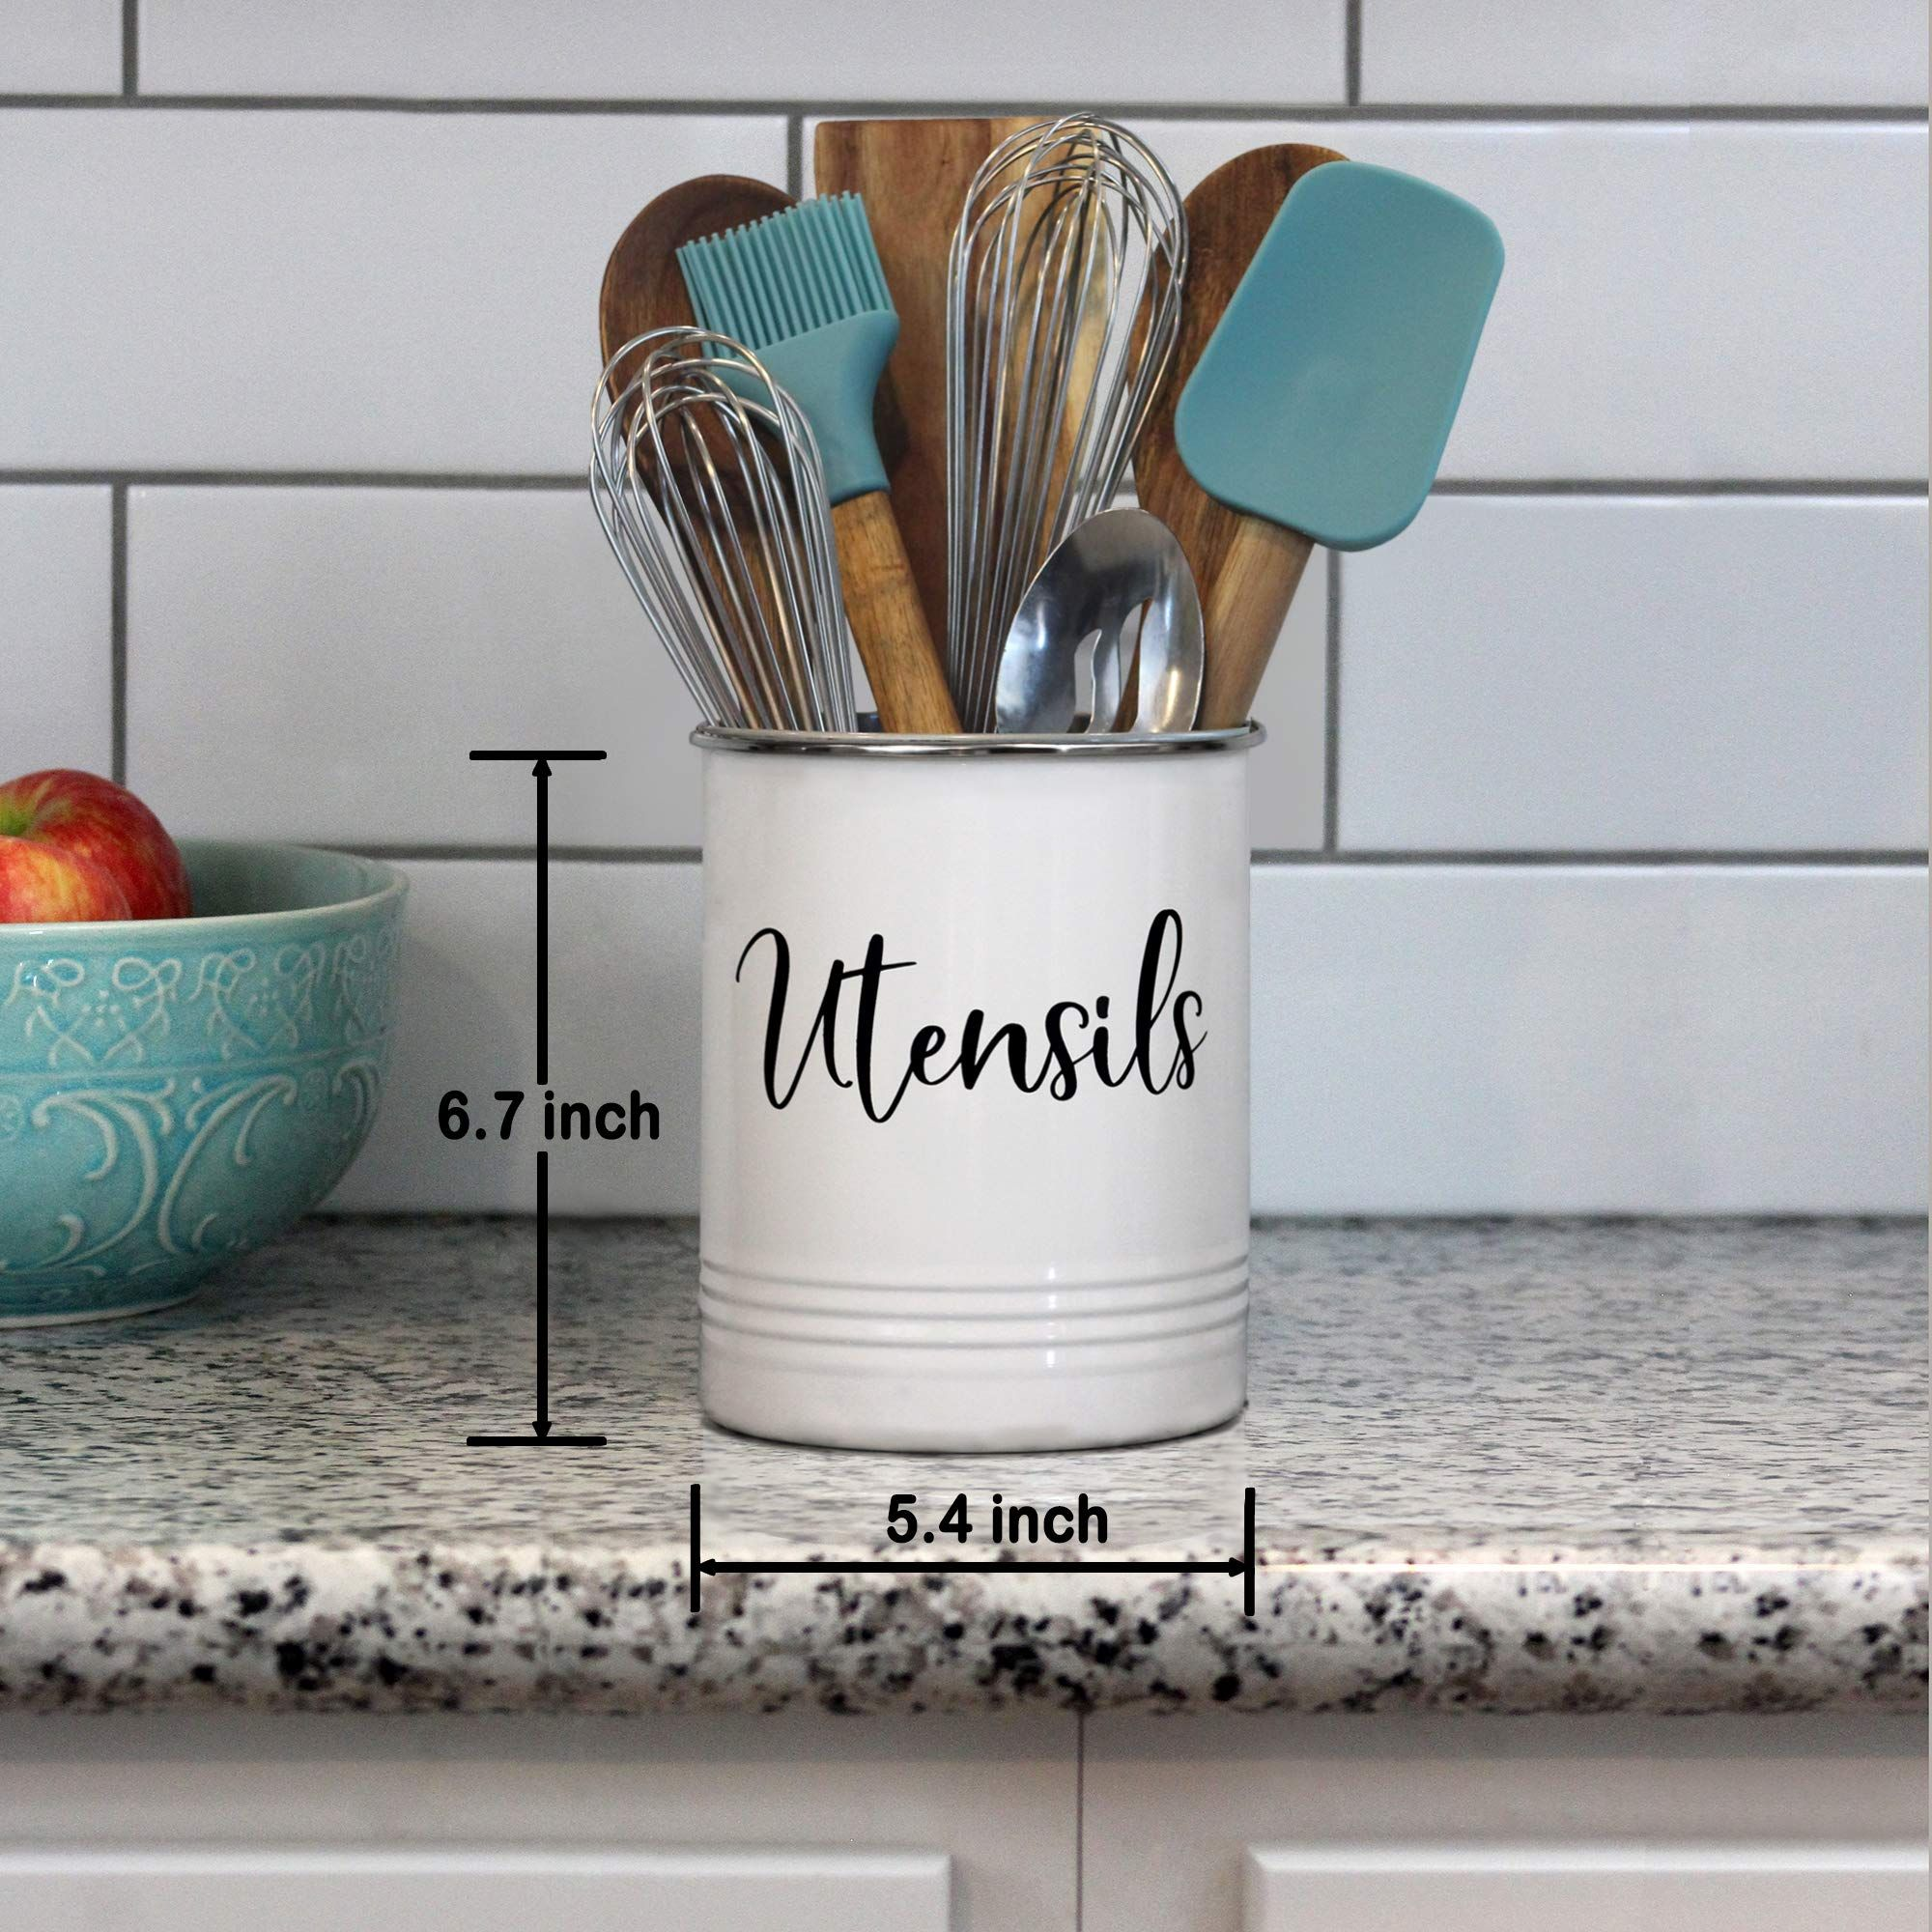 Kitchen Utensil Holder Modern Farmhouse Kitchen Decor Large White And Black Utensil Crock Vin In 2020 With Images Countertop Storage Kitchen Utensil Holder Farmhouse Kitchen Decor